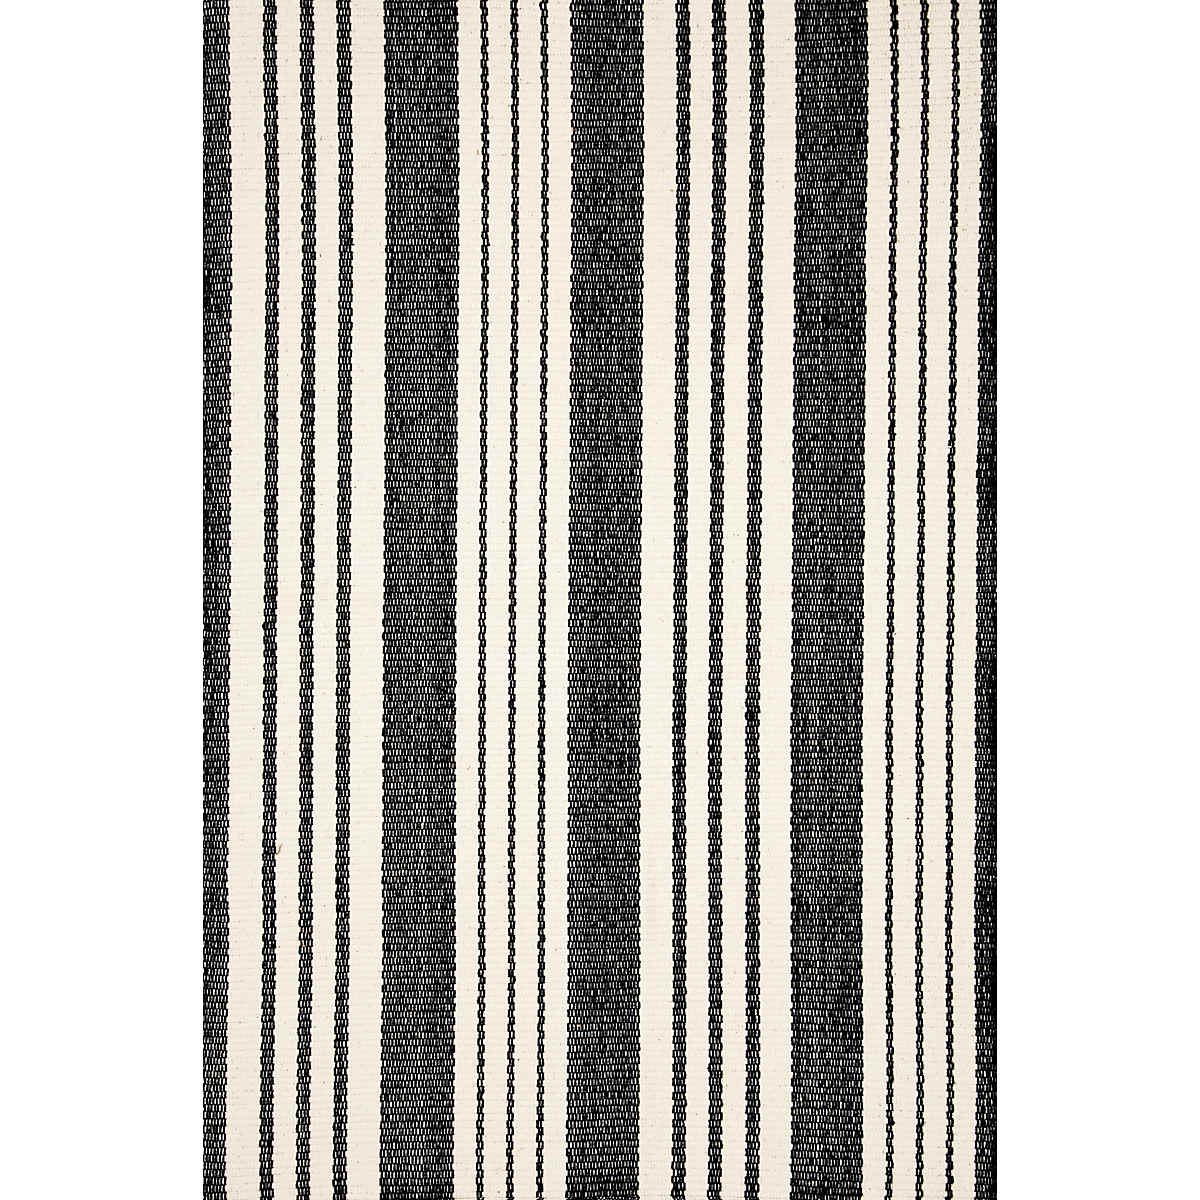 black and white rugs birmingham black woven cotton rug | dash u0026 albert IDLSJSZ